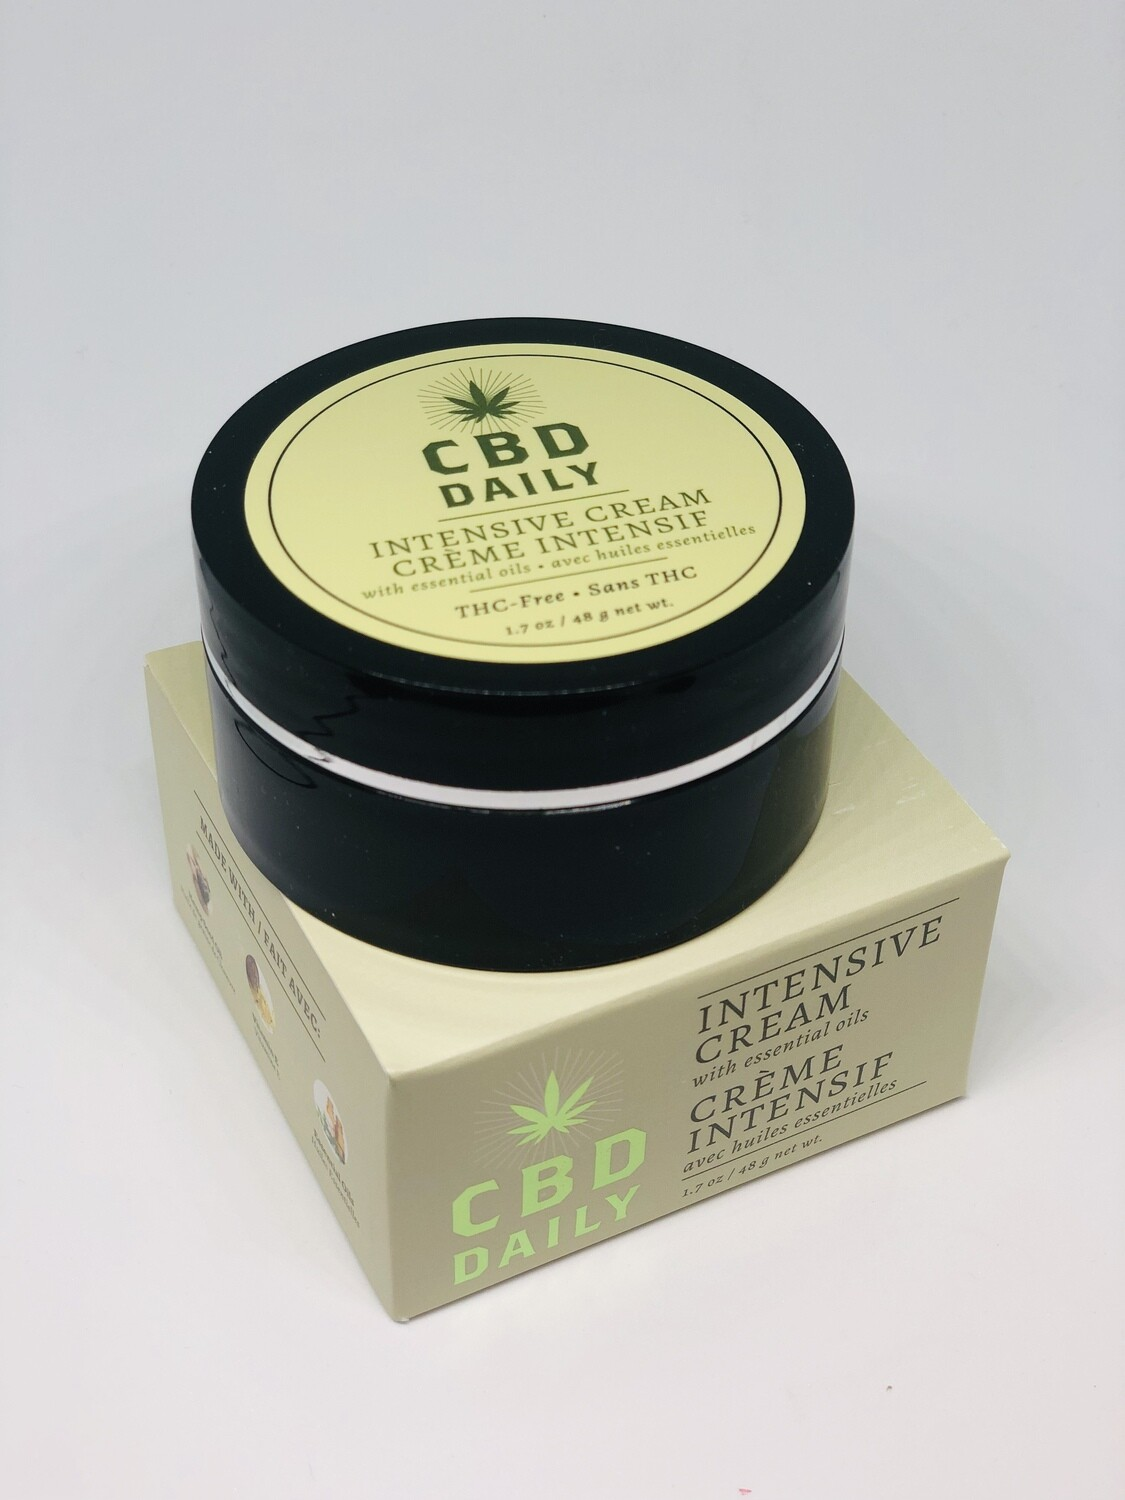 CBD Daily Intensive Cream or Soothing Serum (Regular Price $25.99)